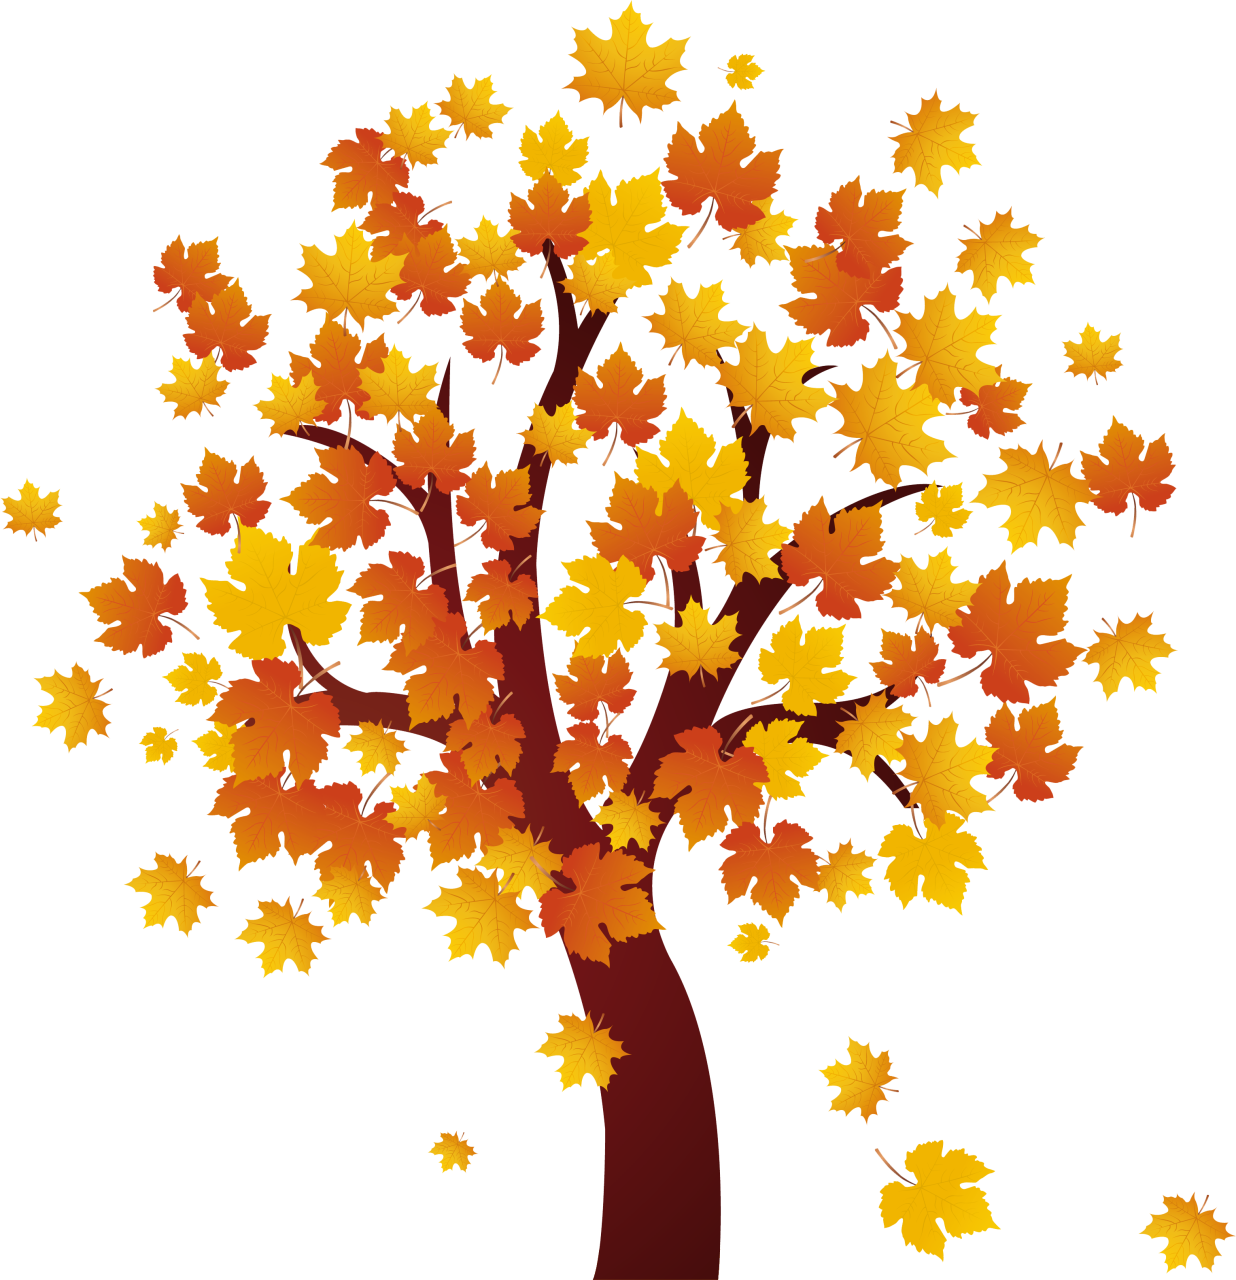 That Others image has been removed at the request of its copyright owner. fall tree clipart. Free Clipart Of Fall Trees